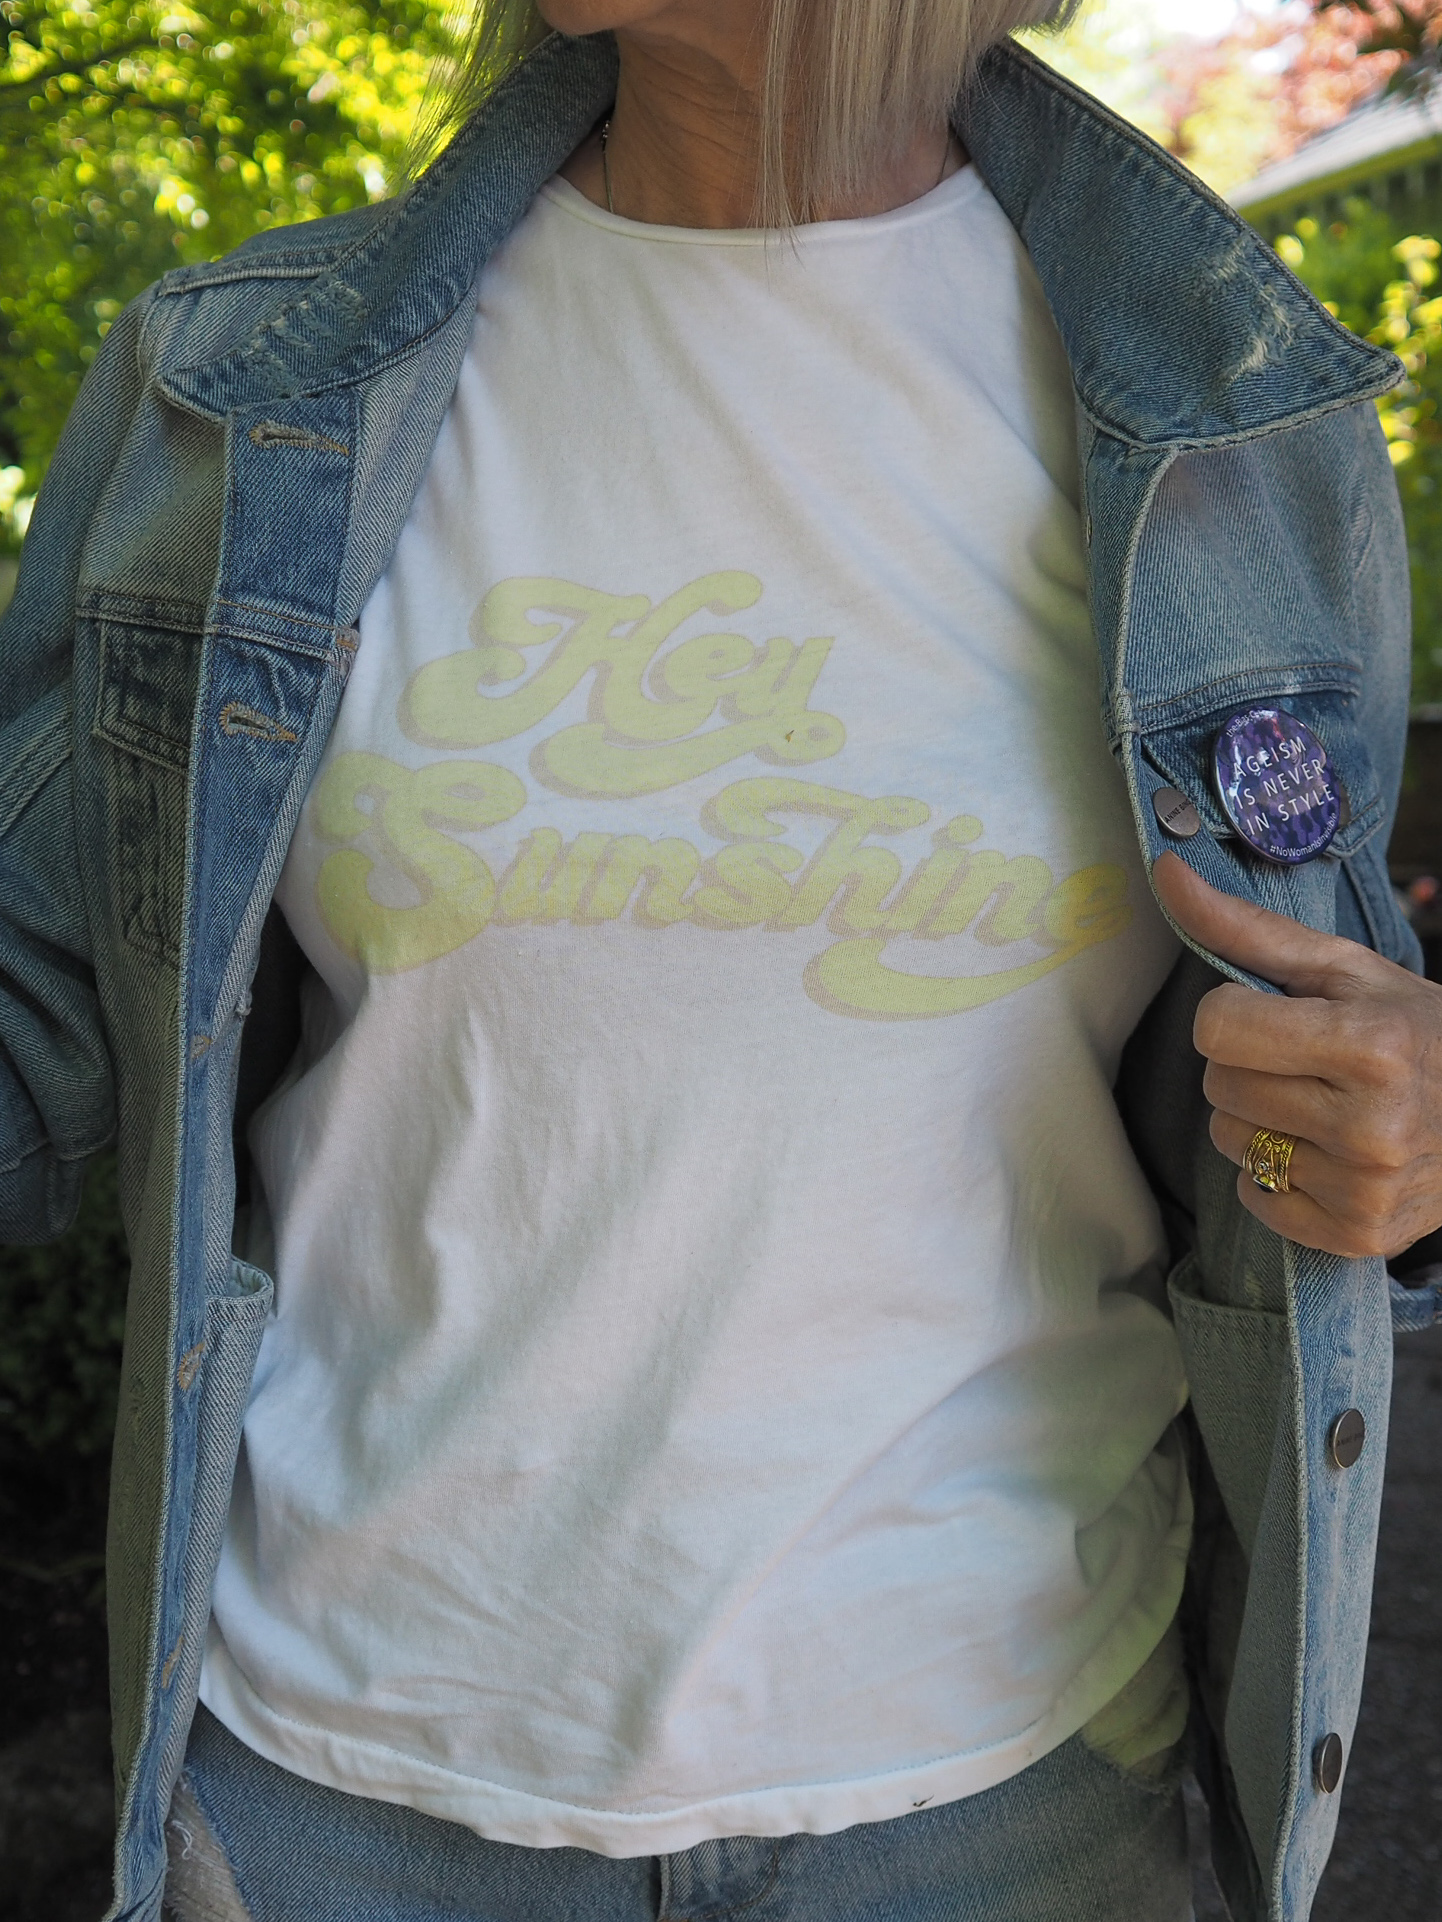 """Such a cool vintage 70's vibe from this one that says """"Hey Sunshine"""". It speaks to my teenage self. Also with this jean jacket I wear my Ageism is Never in Style button from The Bias Cut.com"""